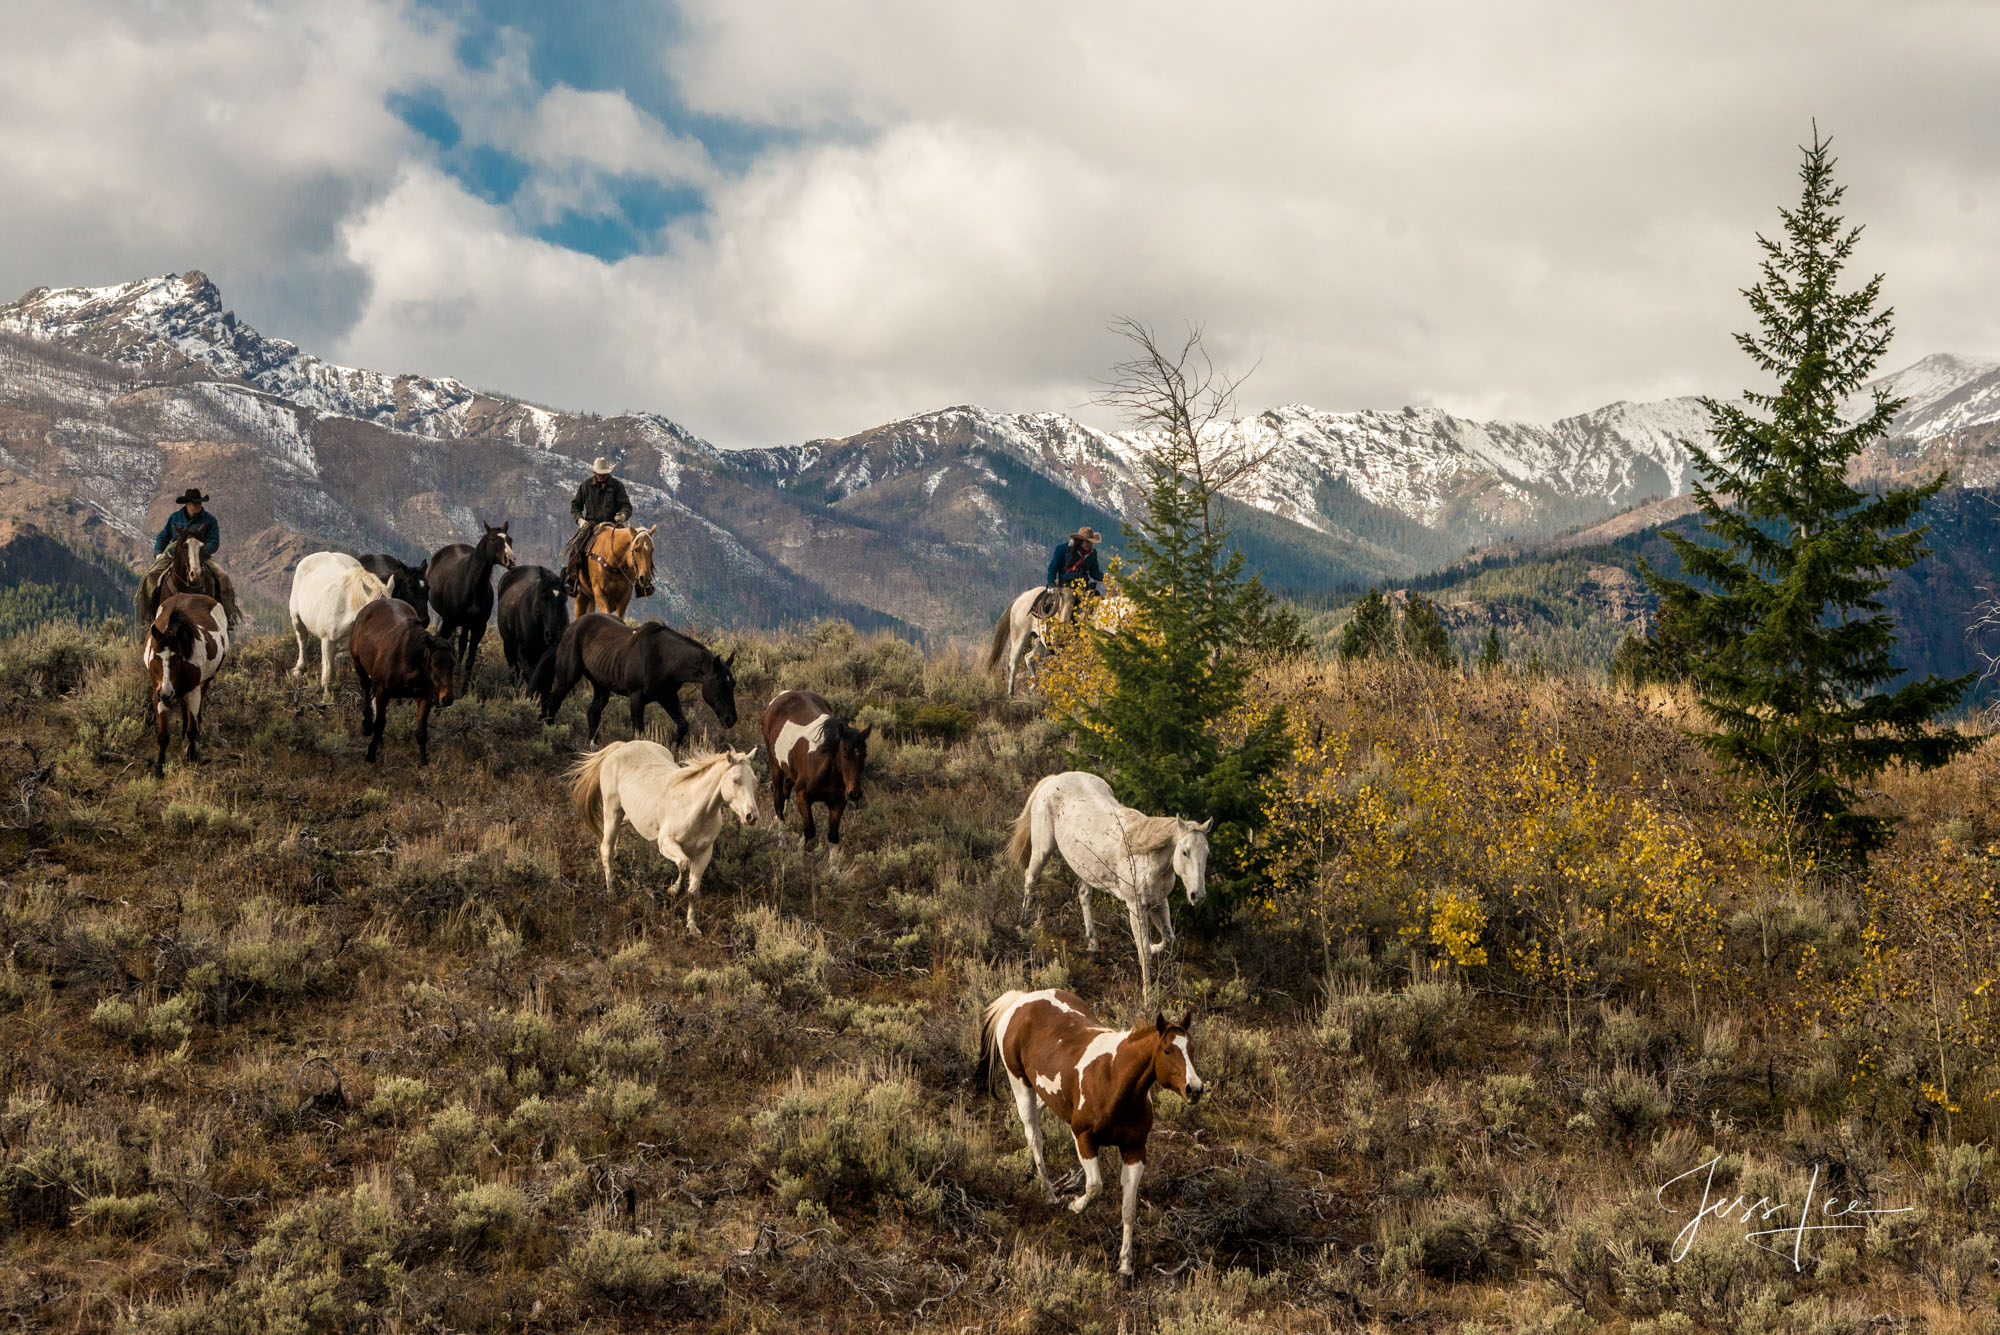 Fine Art Limited Edition Photography of Cowboys, Horses and life in the West. Wyoming Cowboys and cowgirls moving horse herd...